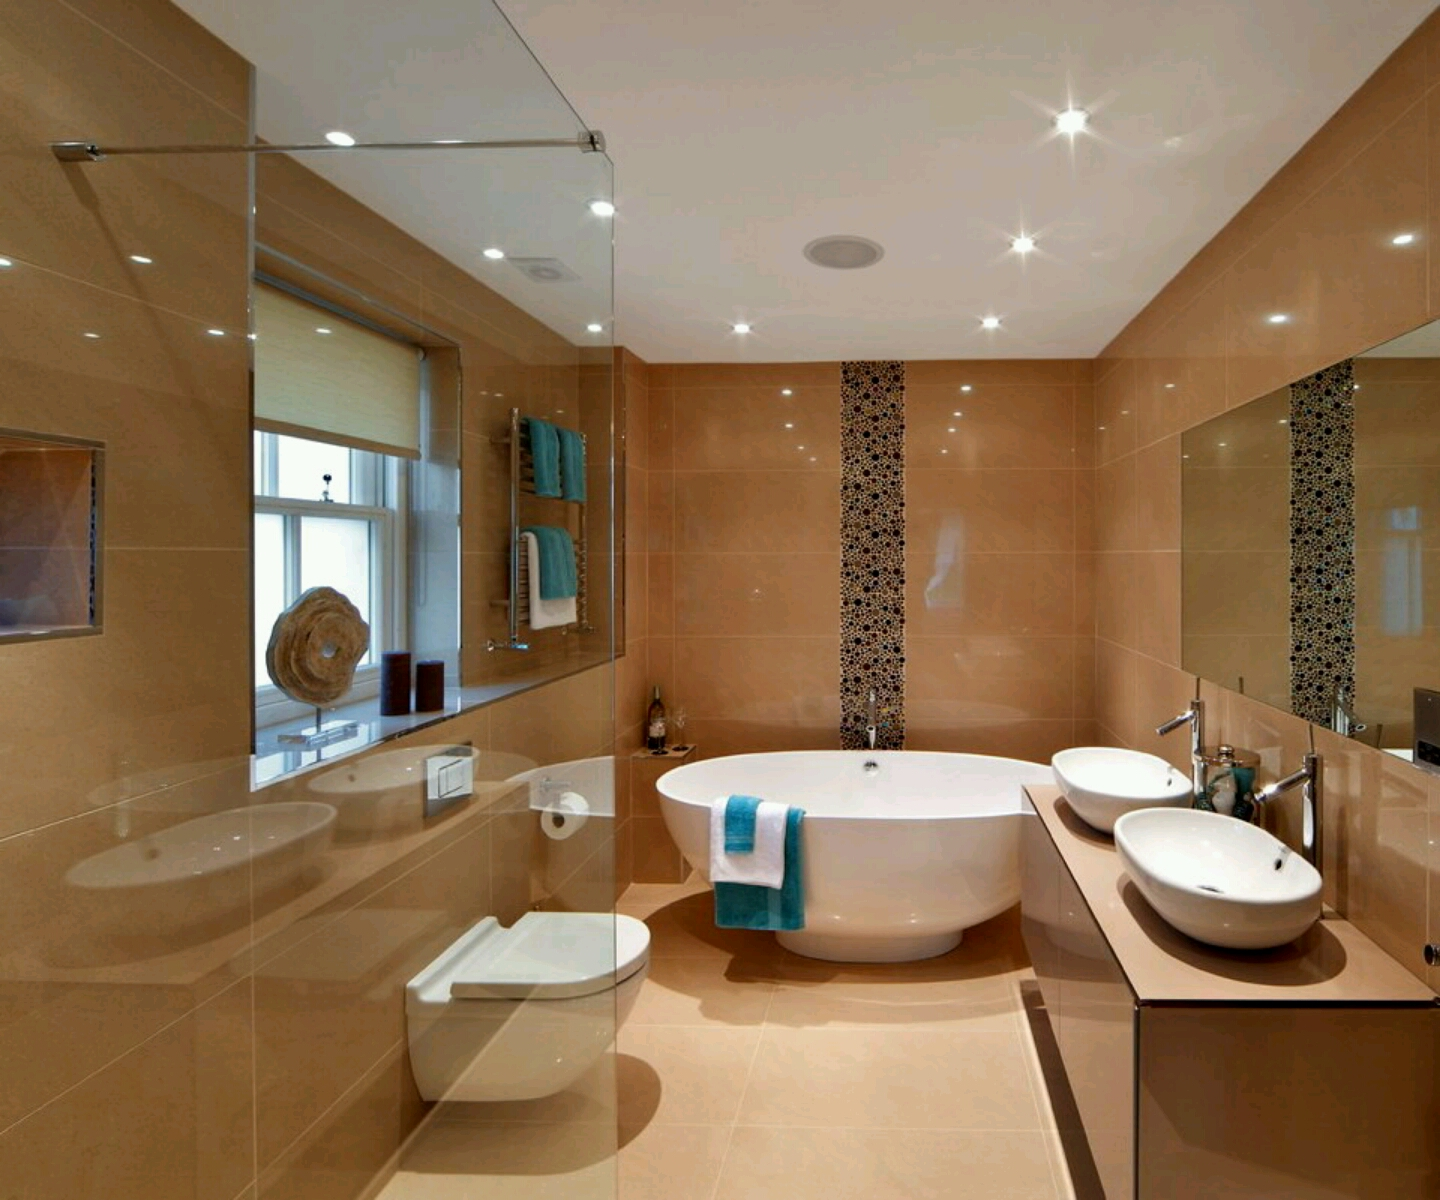 New home designs latest luxury modern bathrooms designs for Bathroom interiors designs